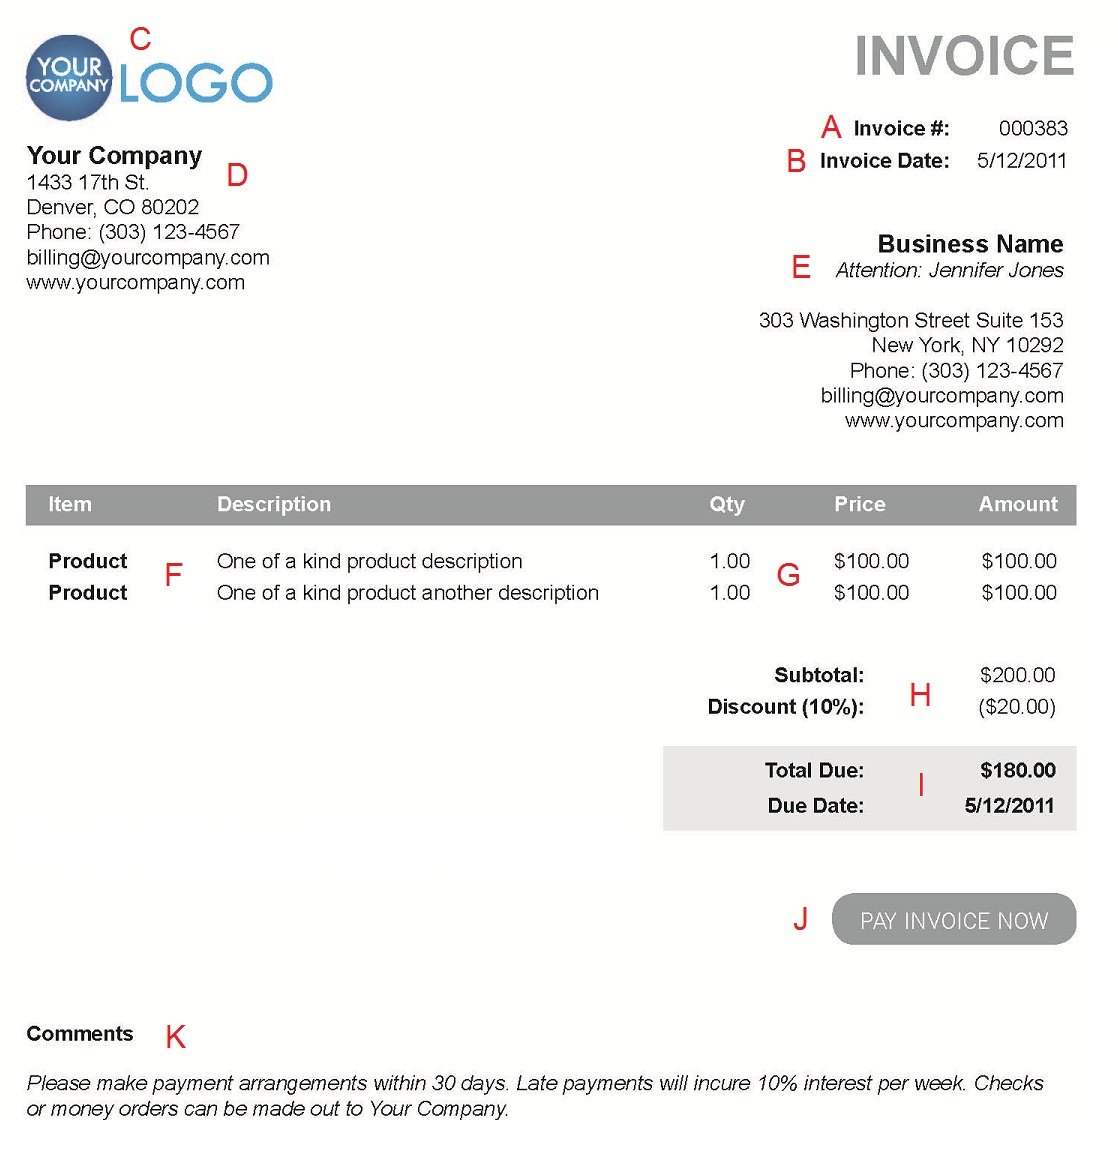 Ultrablogus  Pleasant The  Different Sections Of An Electronic Payment Invoice With Fascinating A  With Delightful True Car Invoice Also What Is The Invoice Price For A Car In Addition How To Write An Invoice For Services And Invoice Generation As Well As Invoice Spreadsheet Template Additionally Express Invoicing From Paysimplecom With Ultrablogus  Fascinating The  Different Sections Of An Electronic Payment Invoice With Delightful A  And Pleasant True Car Invoice Also What Is The Invoice Price For A Car In Addition How To Write An Invoice For Services From Paysimplecom